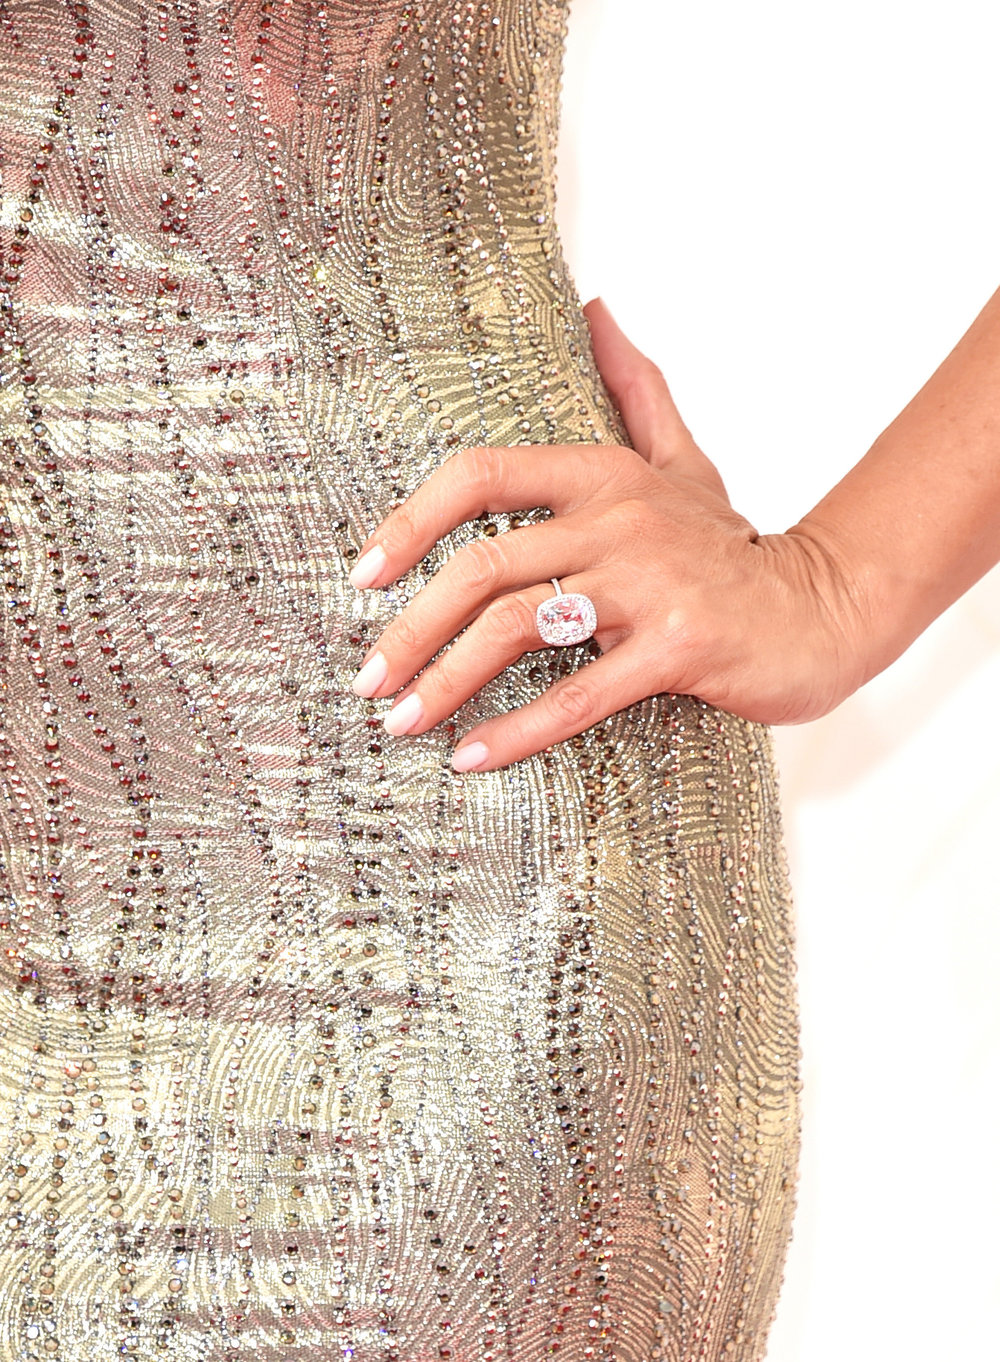 Sofia Vergara wearing her stunning engagement ring.